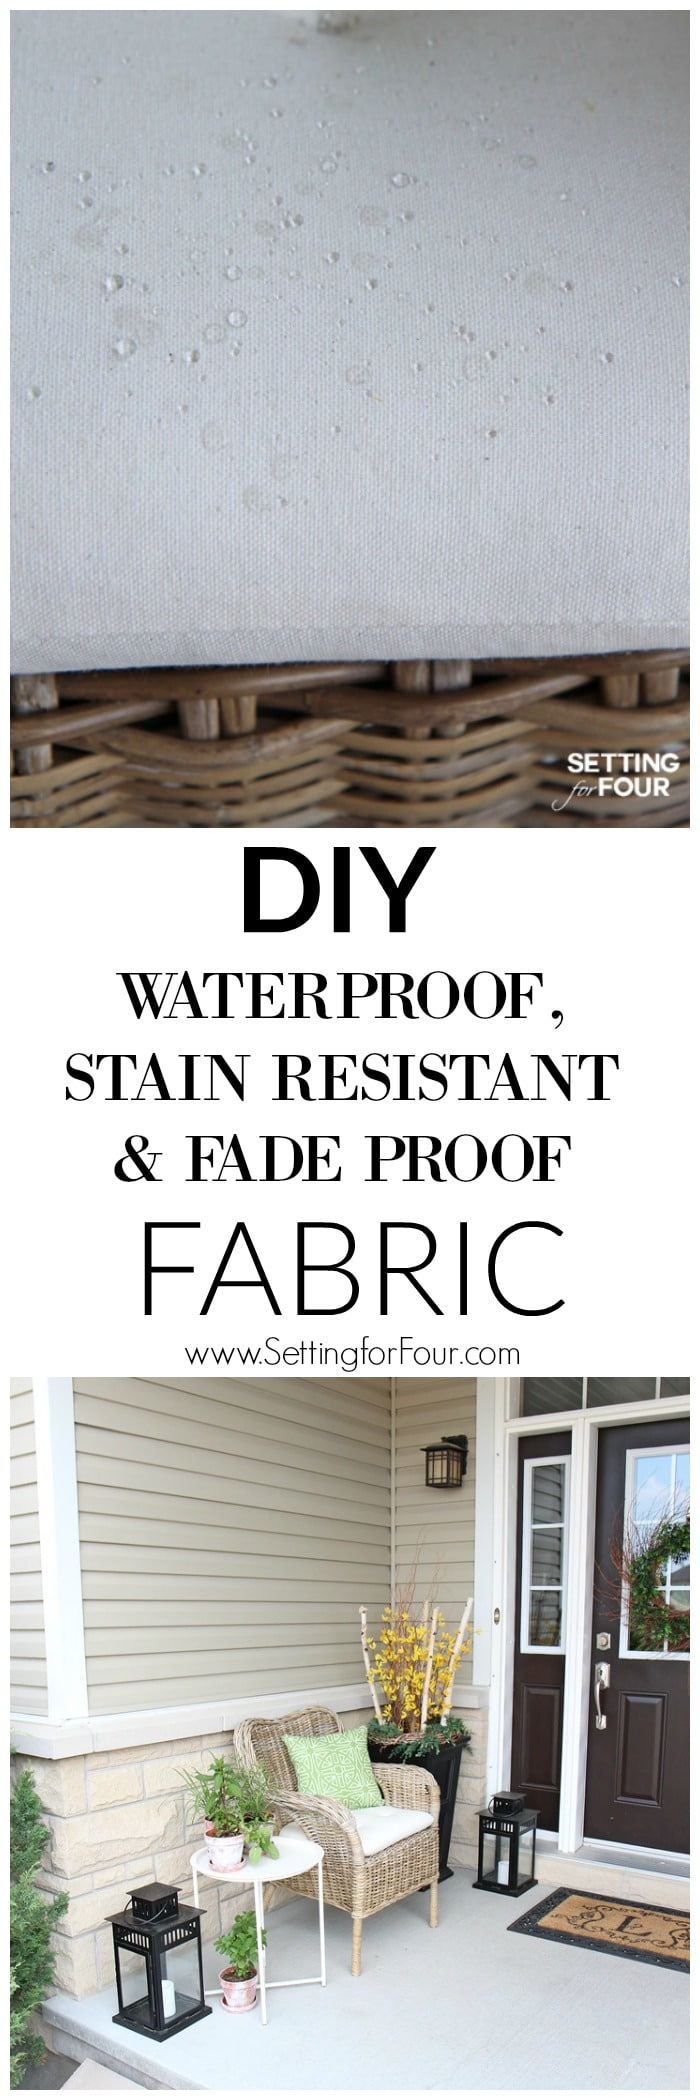 GENIUS! Easy DIY waterproof, stain resistant and fade proof fabric! Fabric is super durable for indoors or outdoors but still so soft. Great for kids and pets.